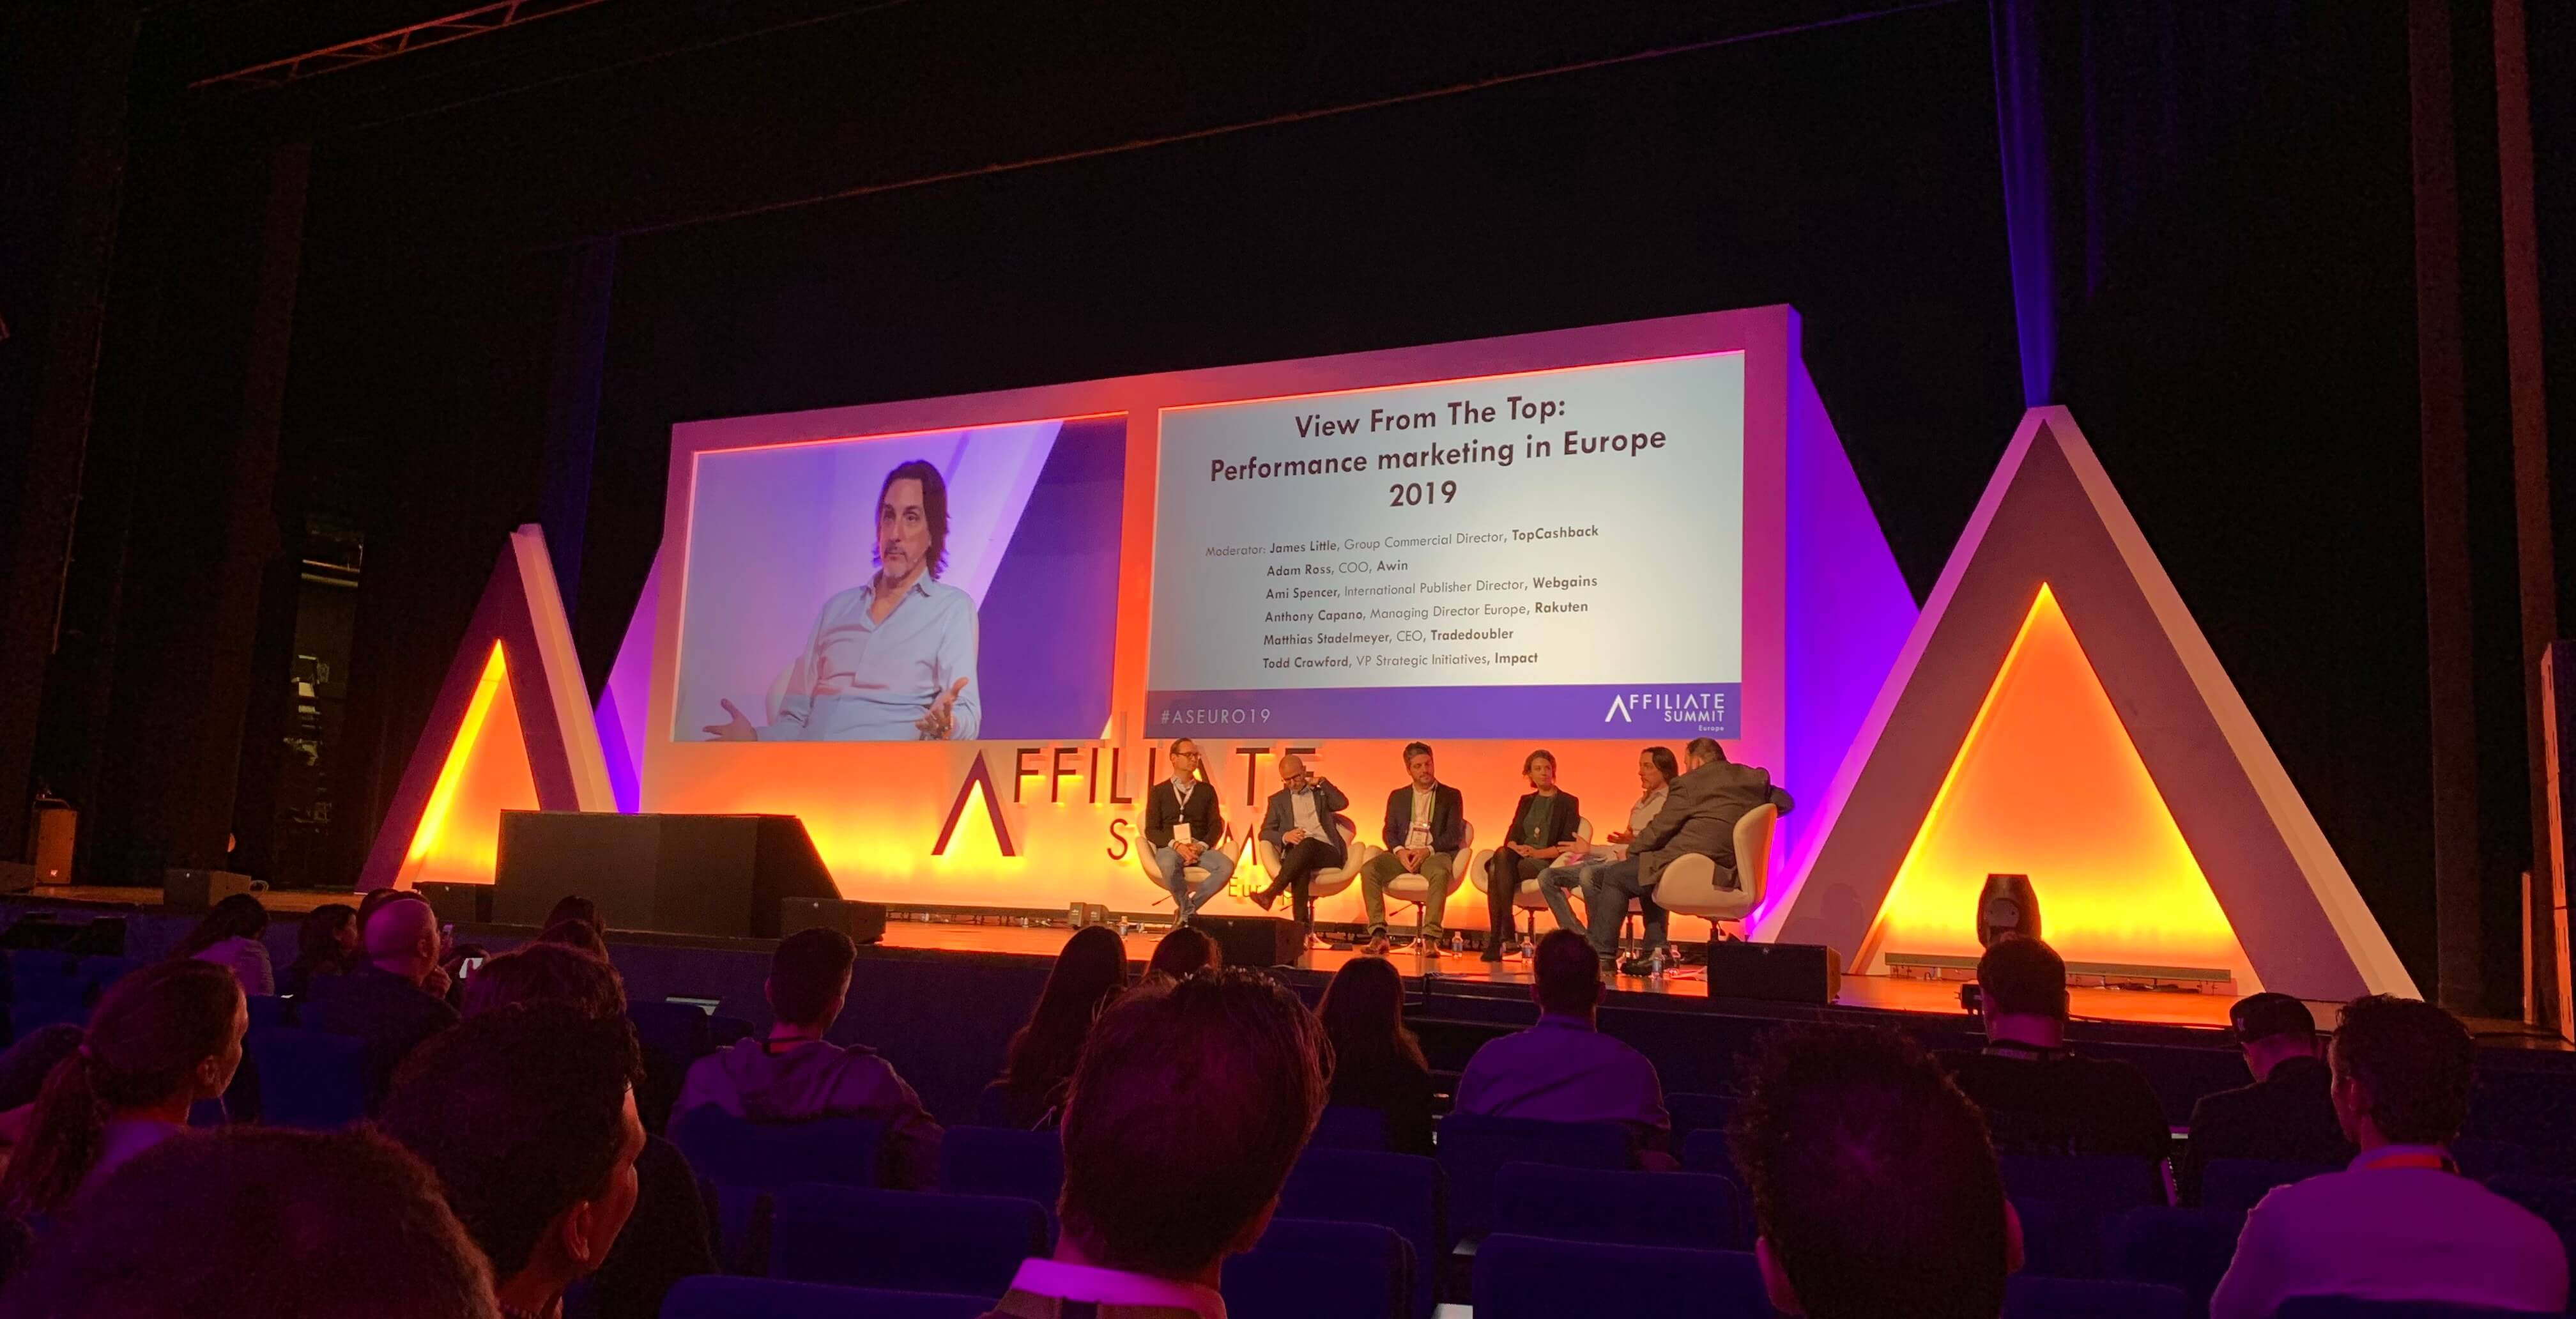 View From The Top: Performance Marketing in Europe 2019